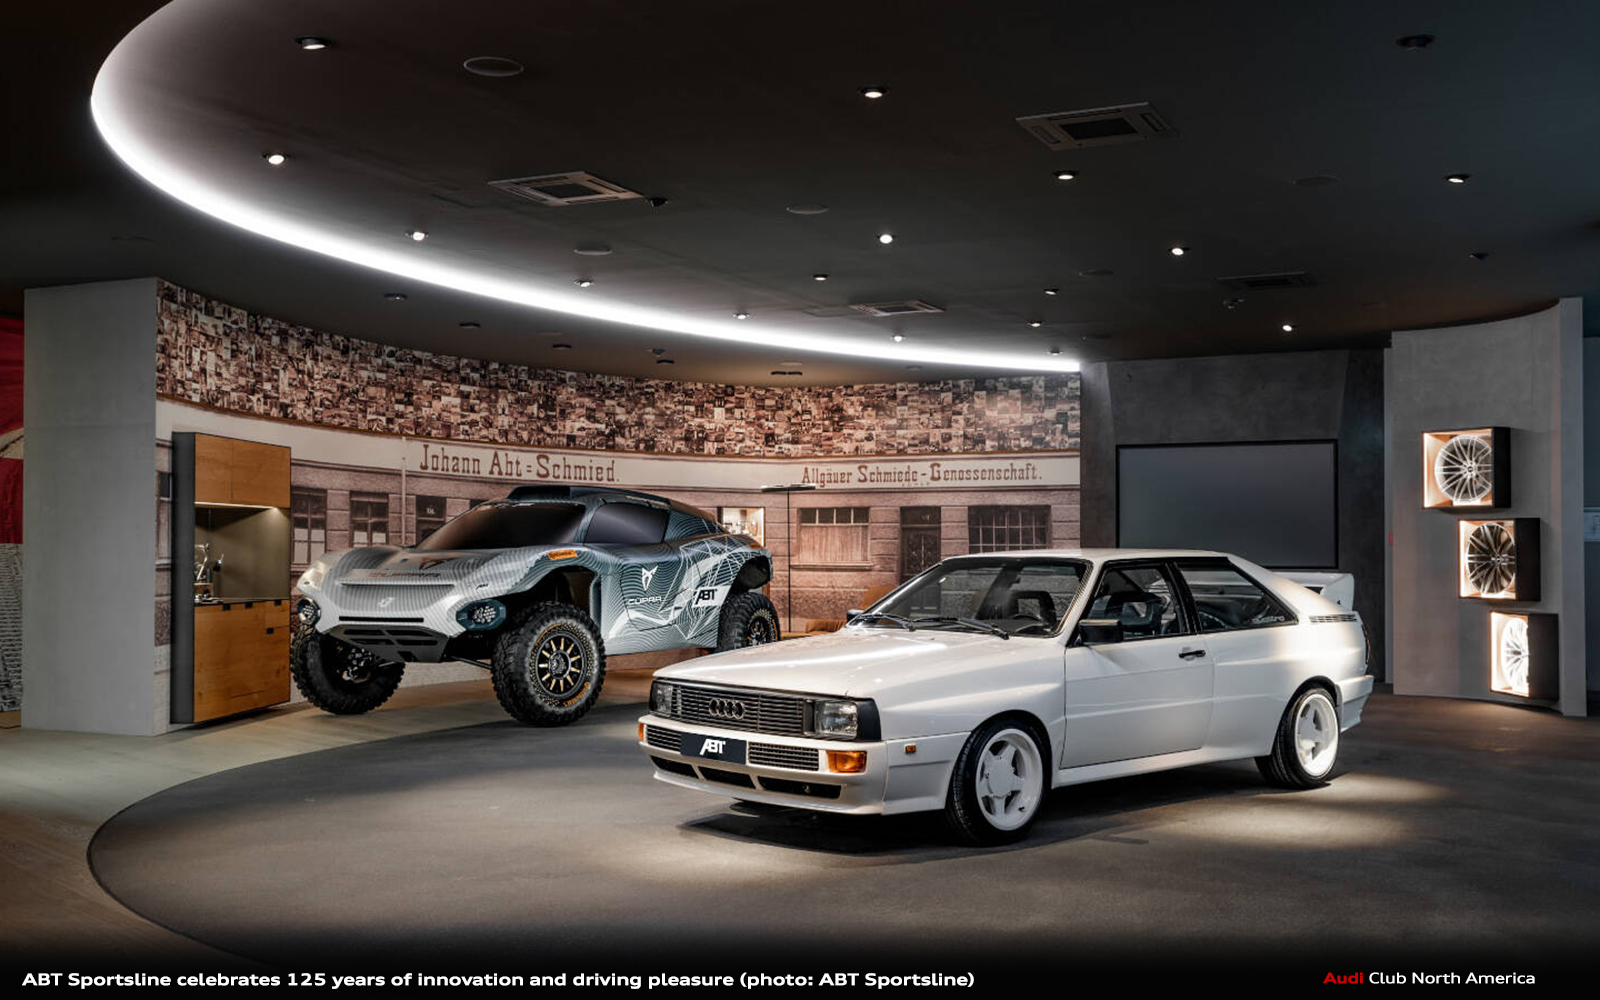 ABT Sportsline Celebrates 125 Years of Innovation and Driving Pleasure